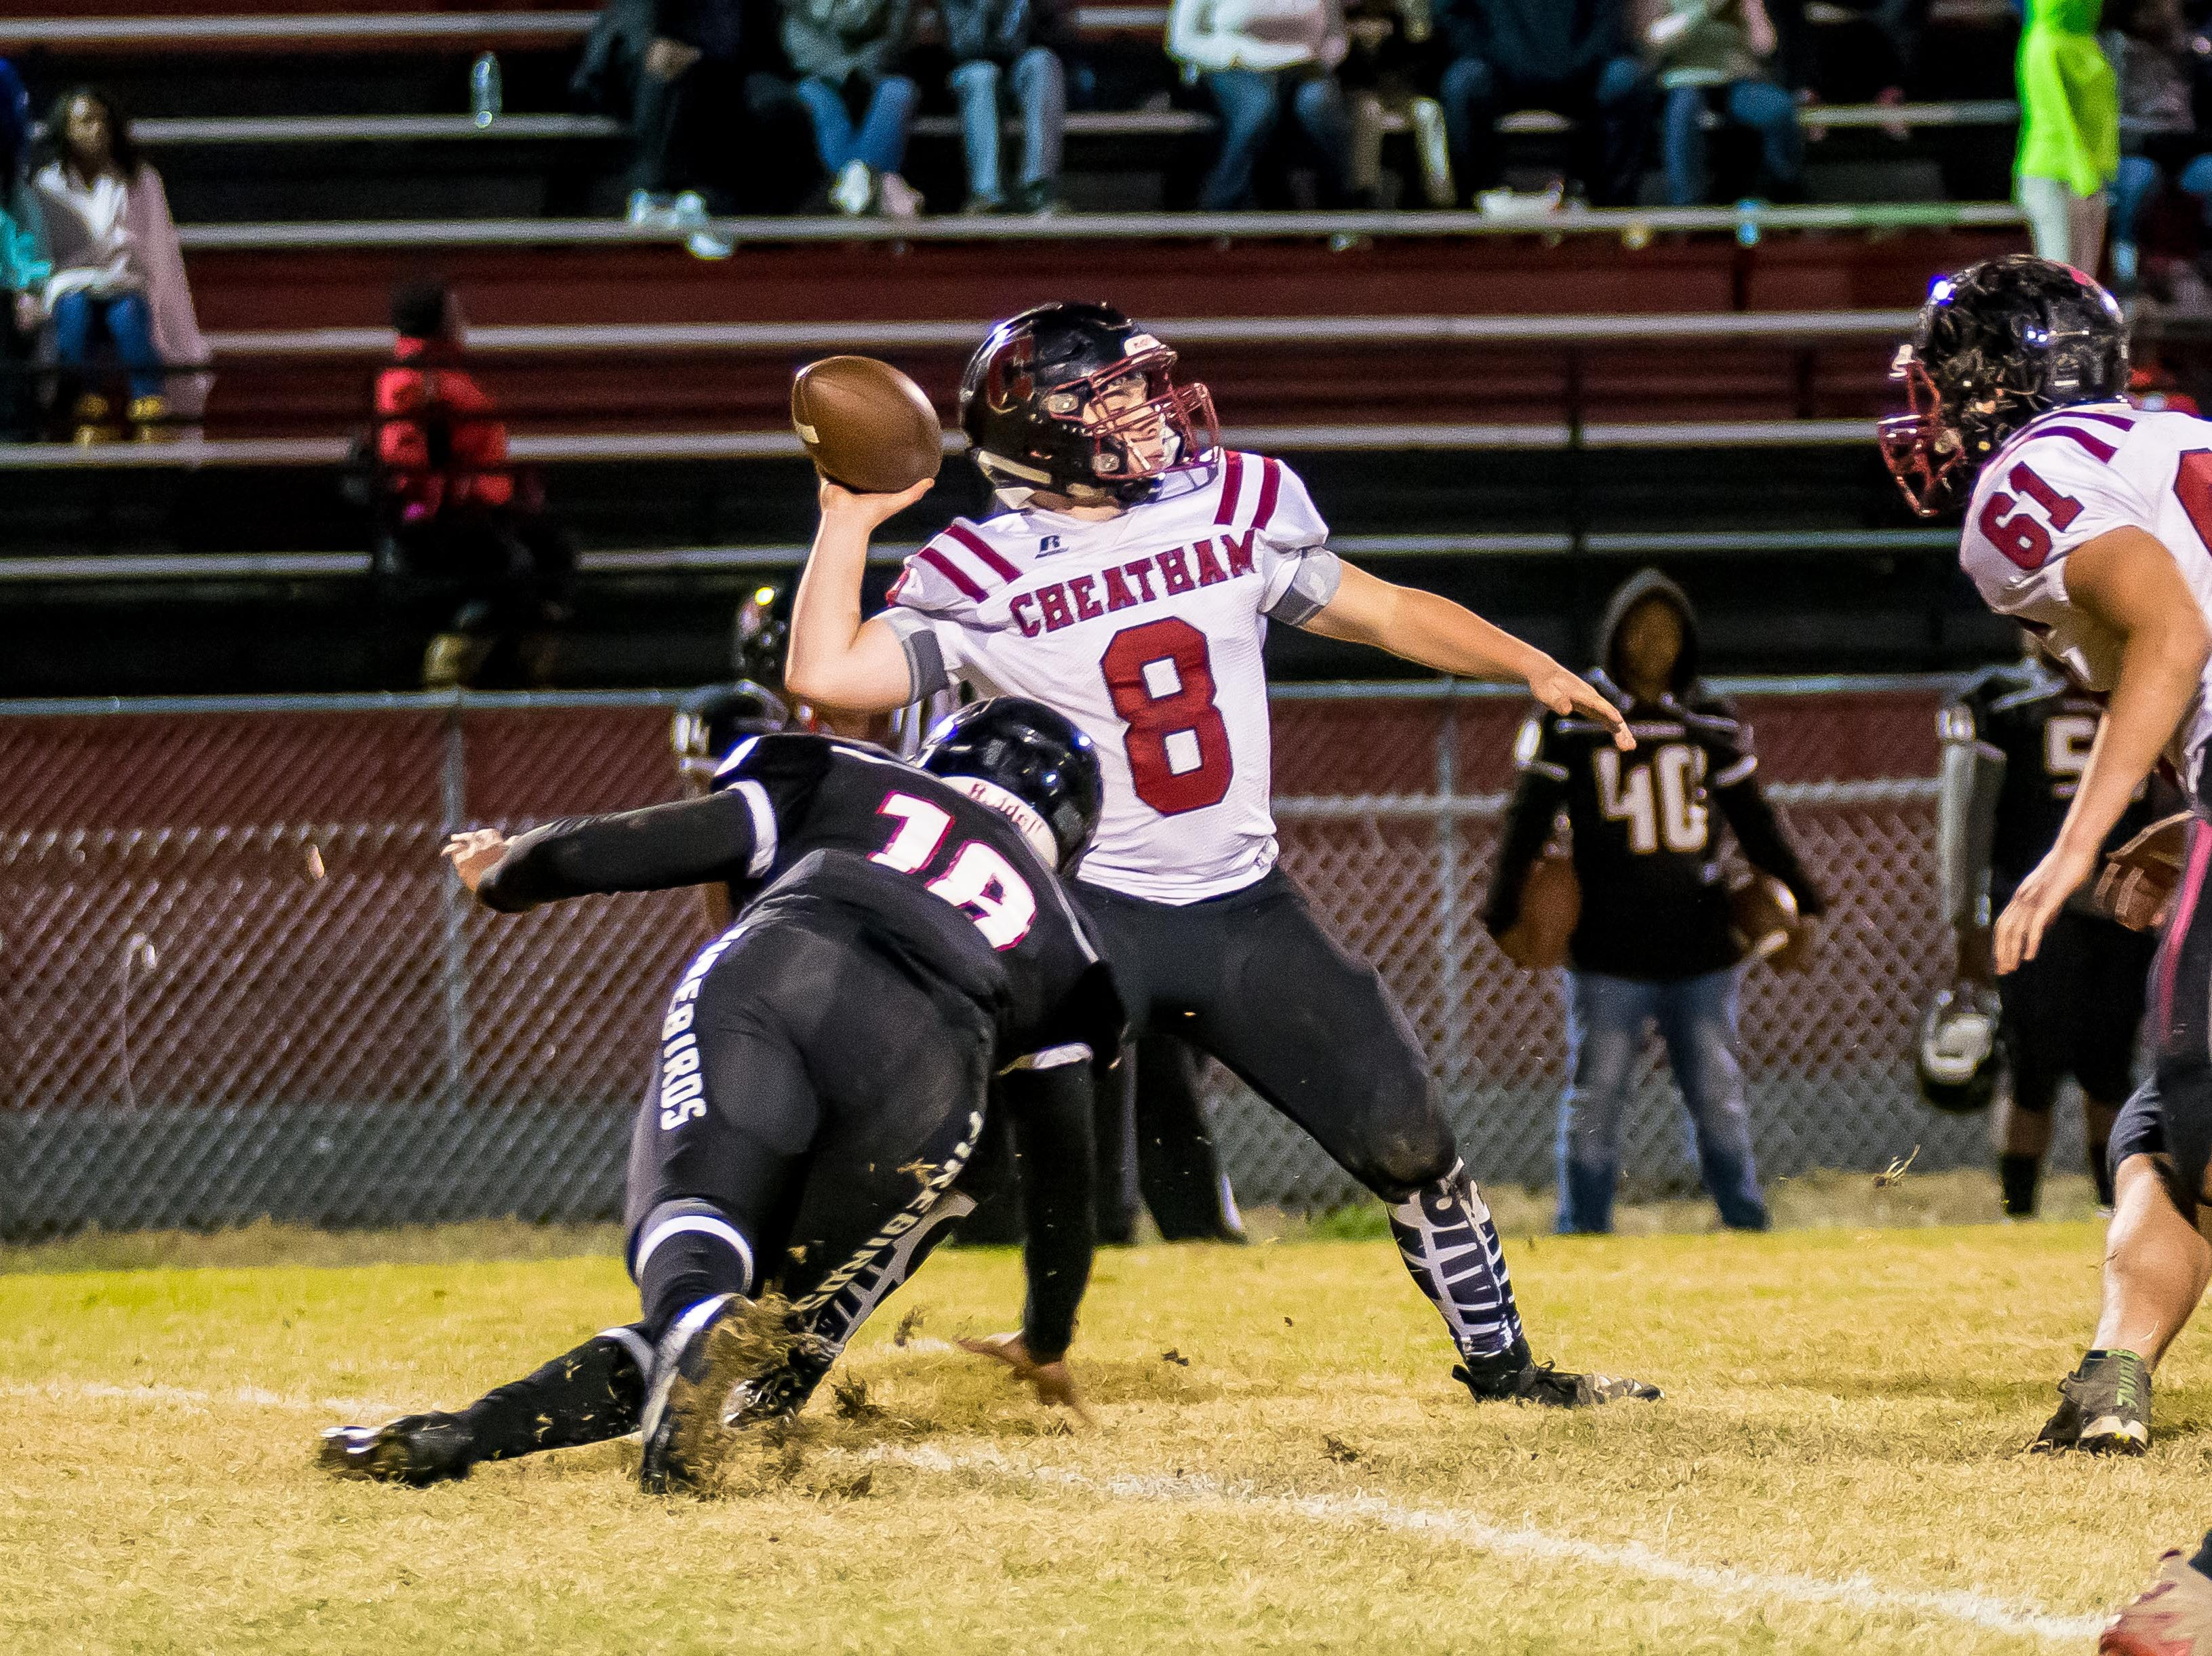 Cheatham County's Bryson Entrikin, who was in at quarterback for most of the game, drops back to pass.